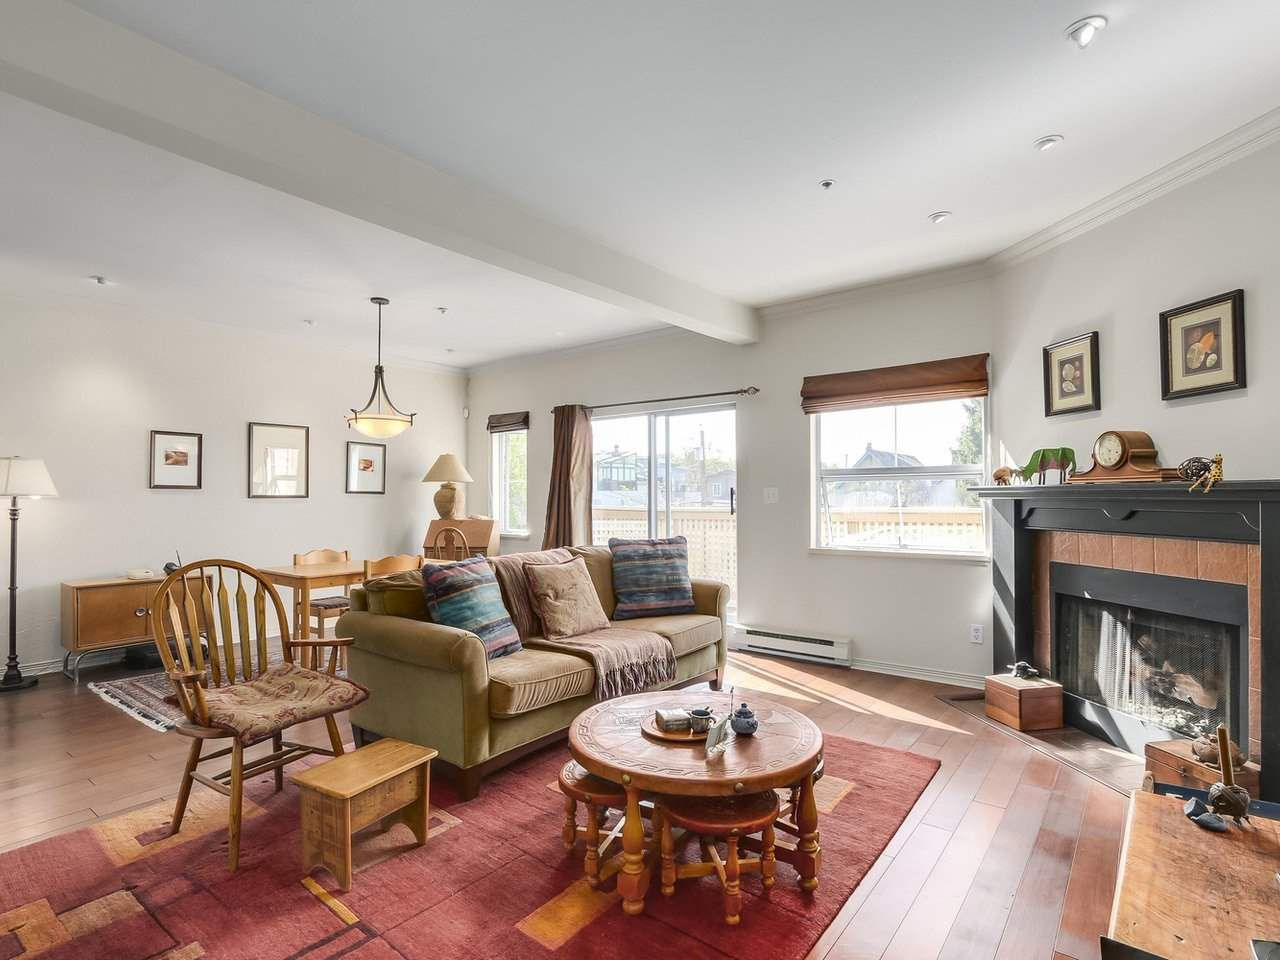 Main Photo: 2244 W 14 Avenue in Vancouver: Kitsilano Townhouse for sale (Vancouver West)  : MLS®# R2332437